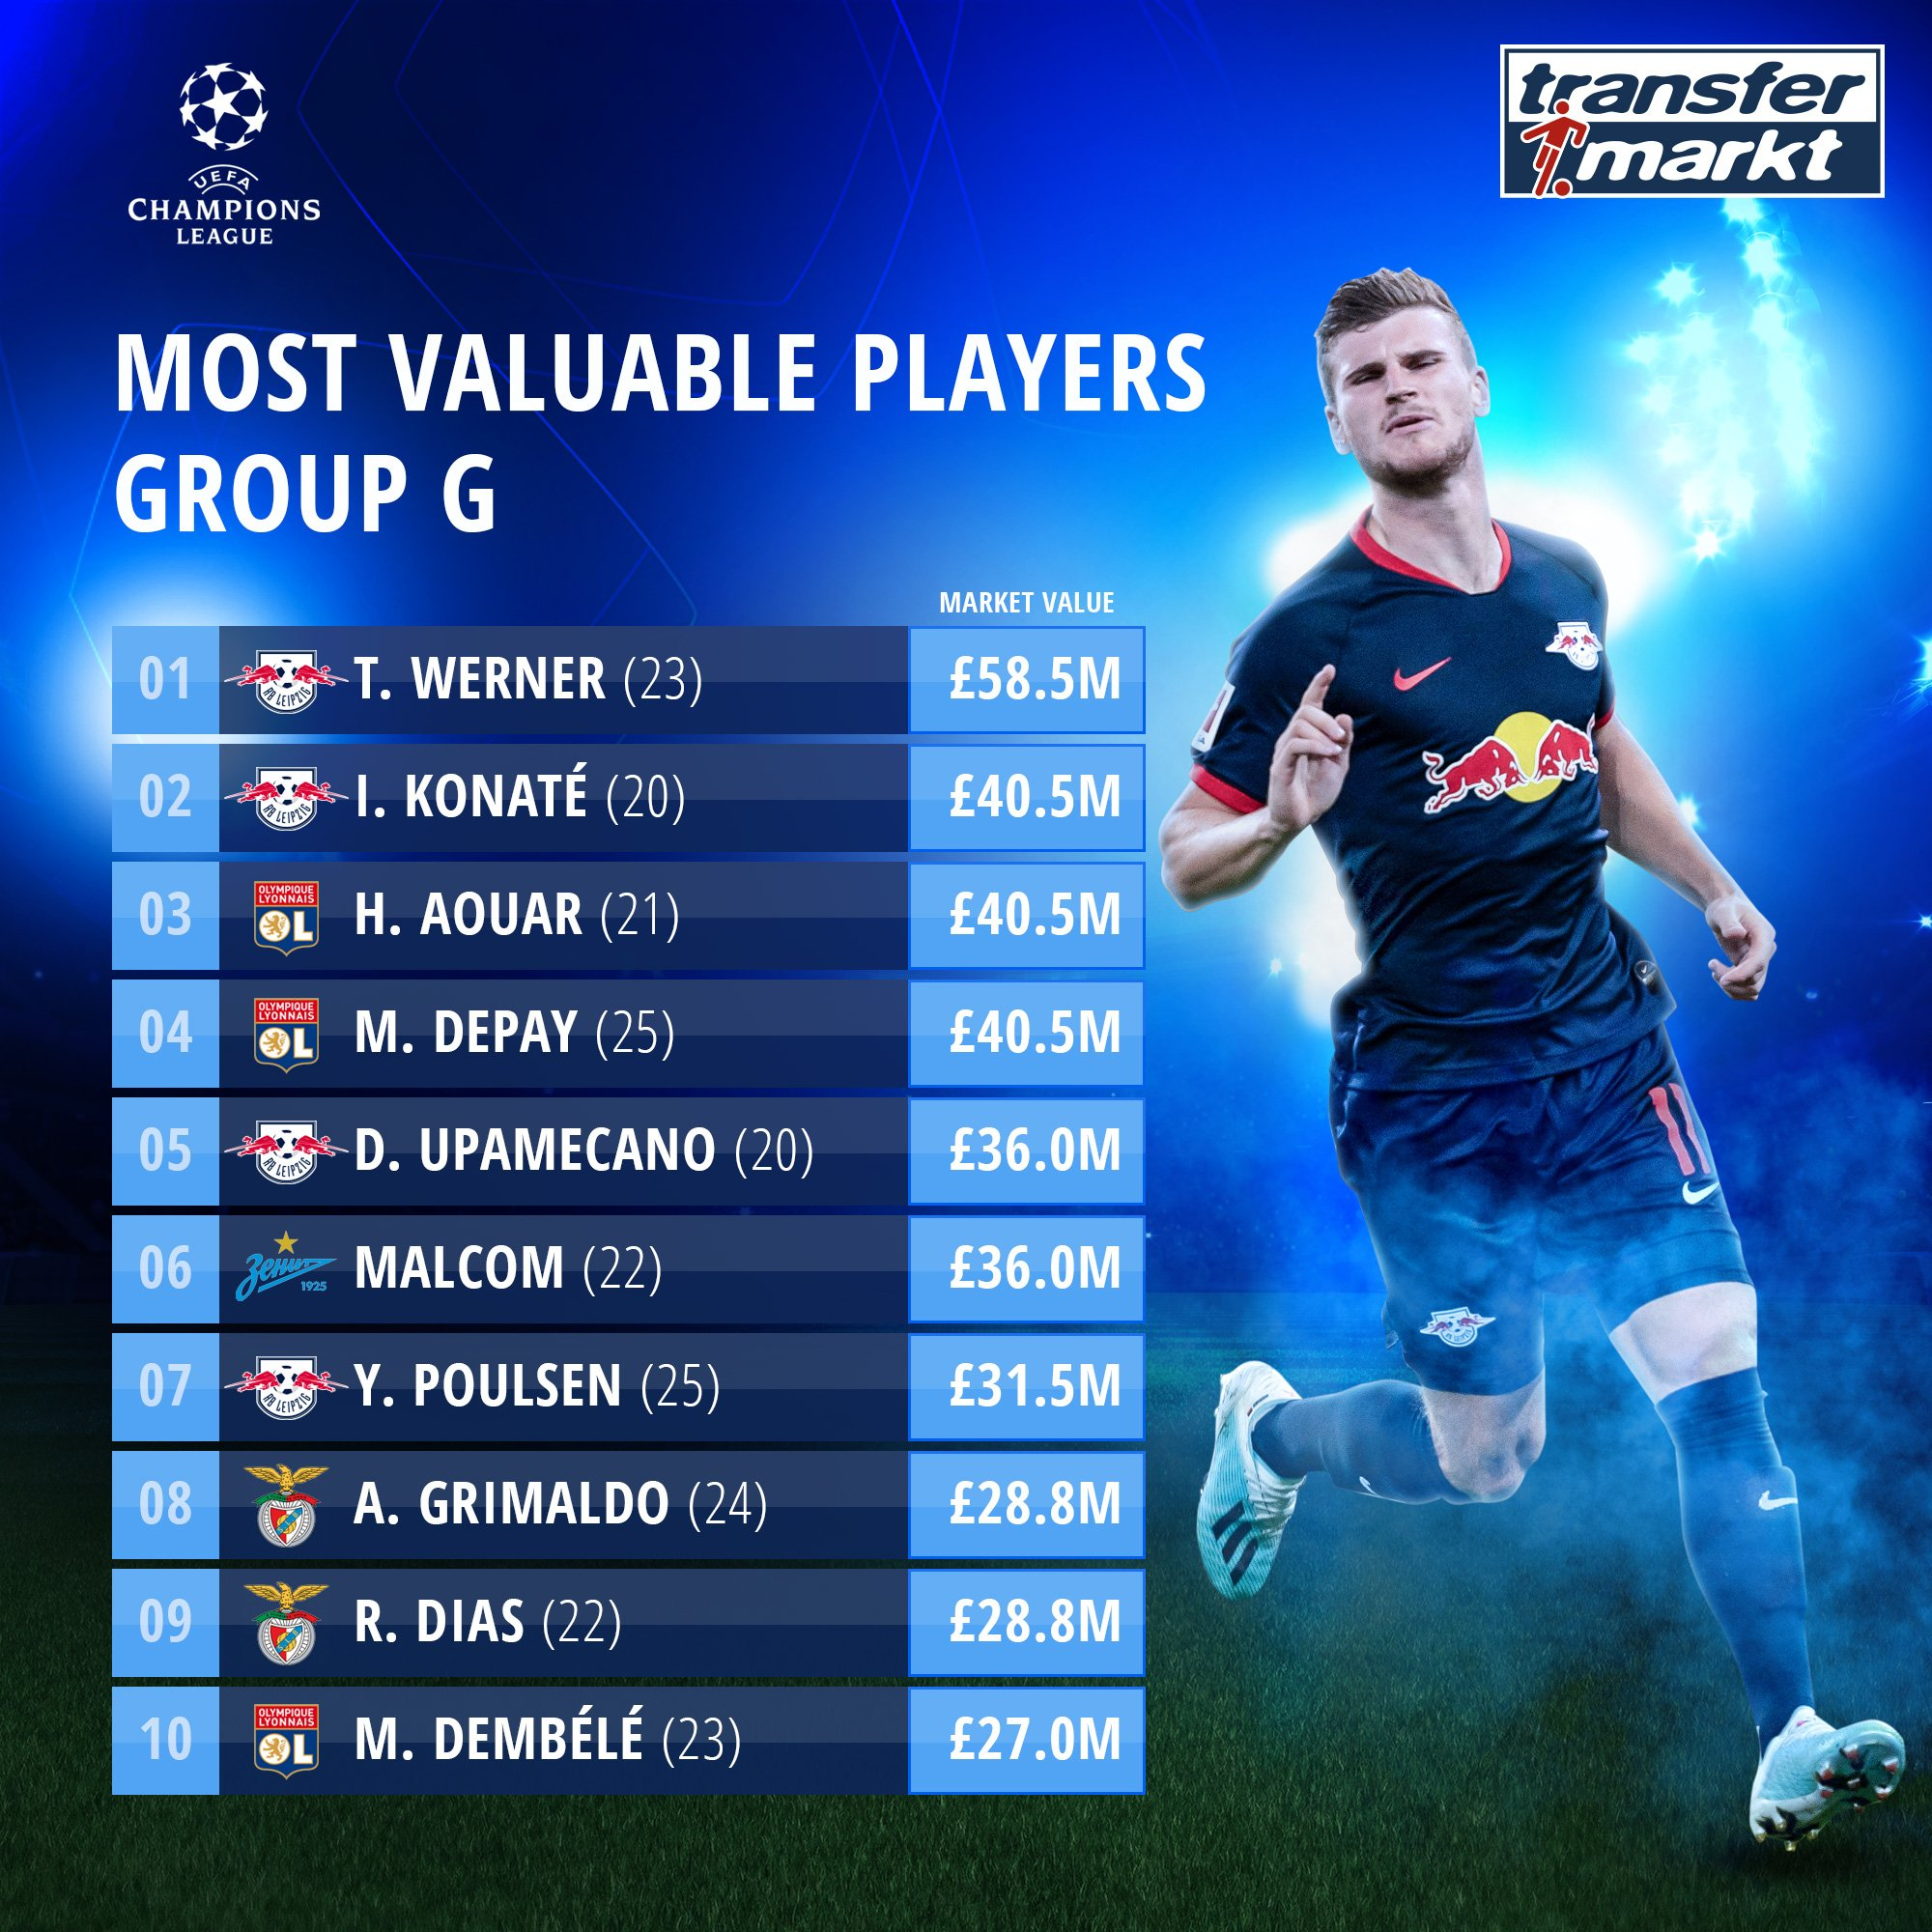 Transfermarkt Co Uk On Twitter Timo Werner Is The Most Valuable Player In Group G All Championsleague Values Https T Co Kyzor7vocw